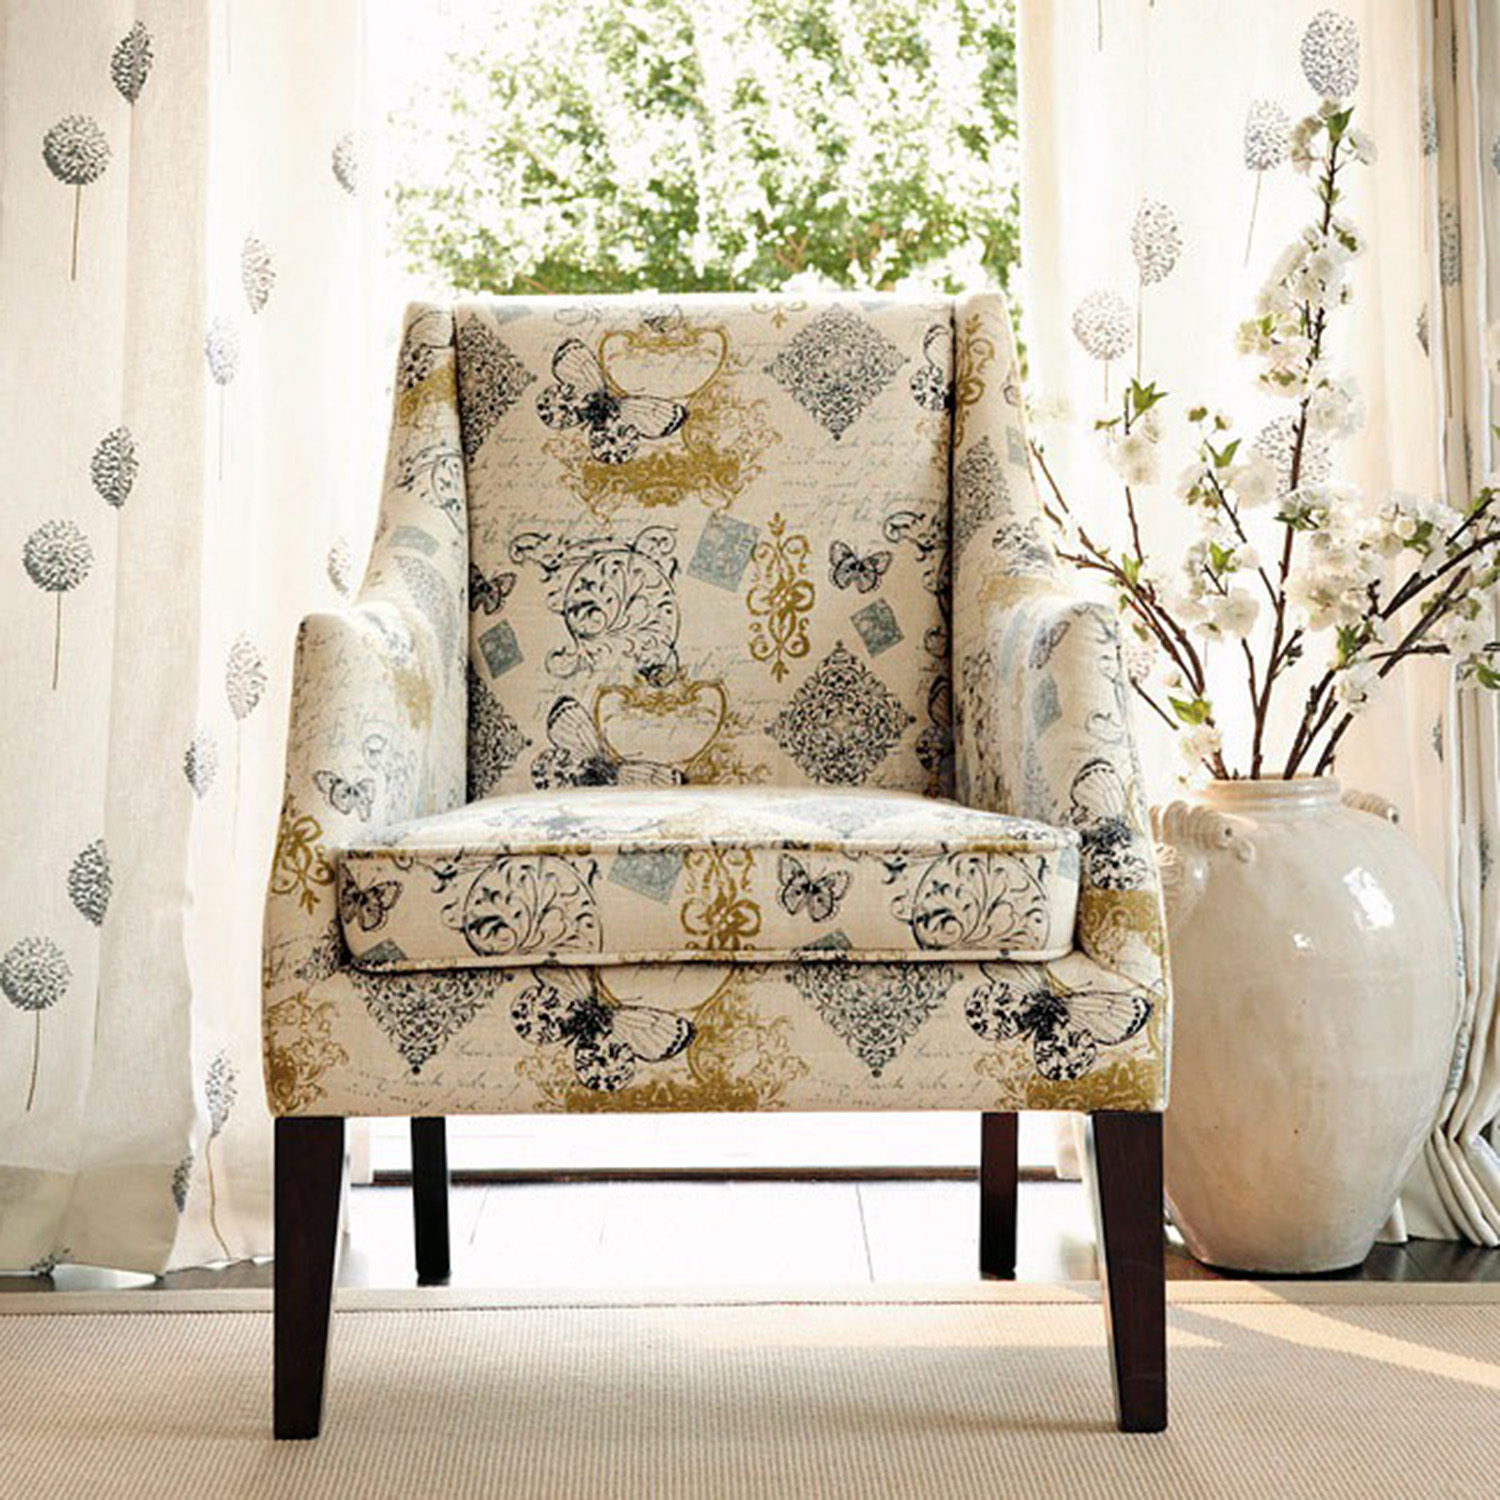 Ashley Furniture Accent Chair 69 Off Ashley Furniture Hindell Park Putty Accent Chair